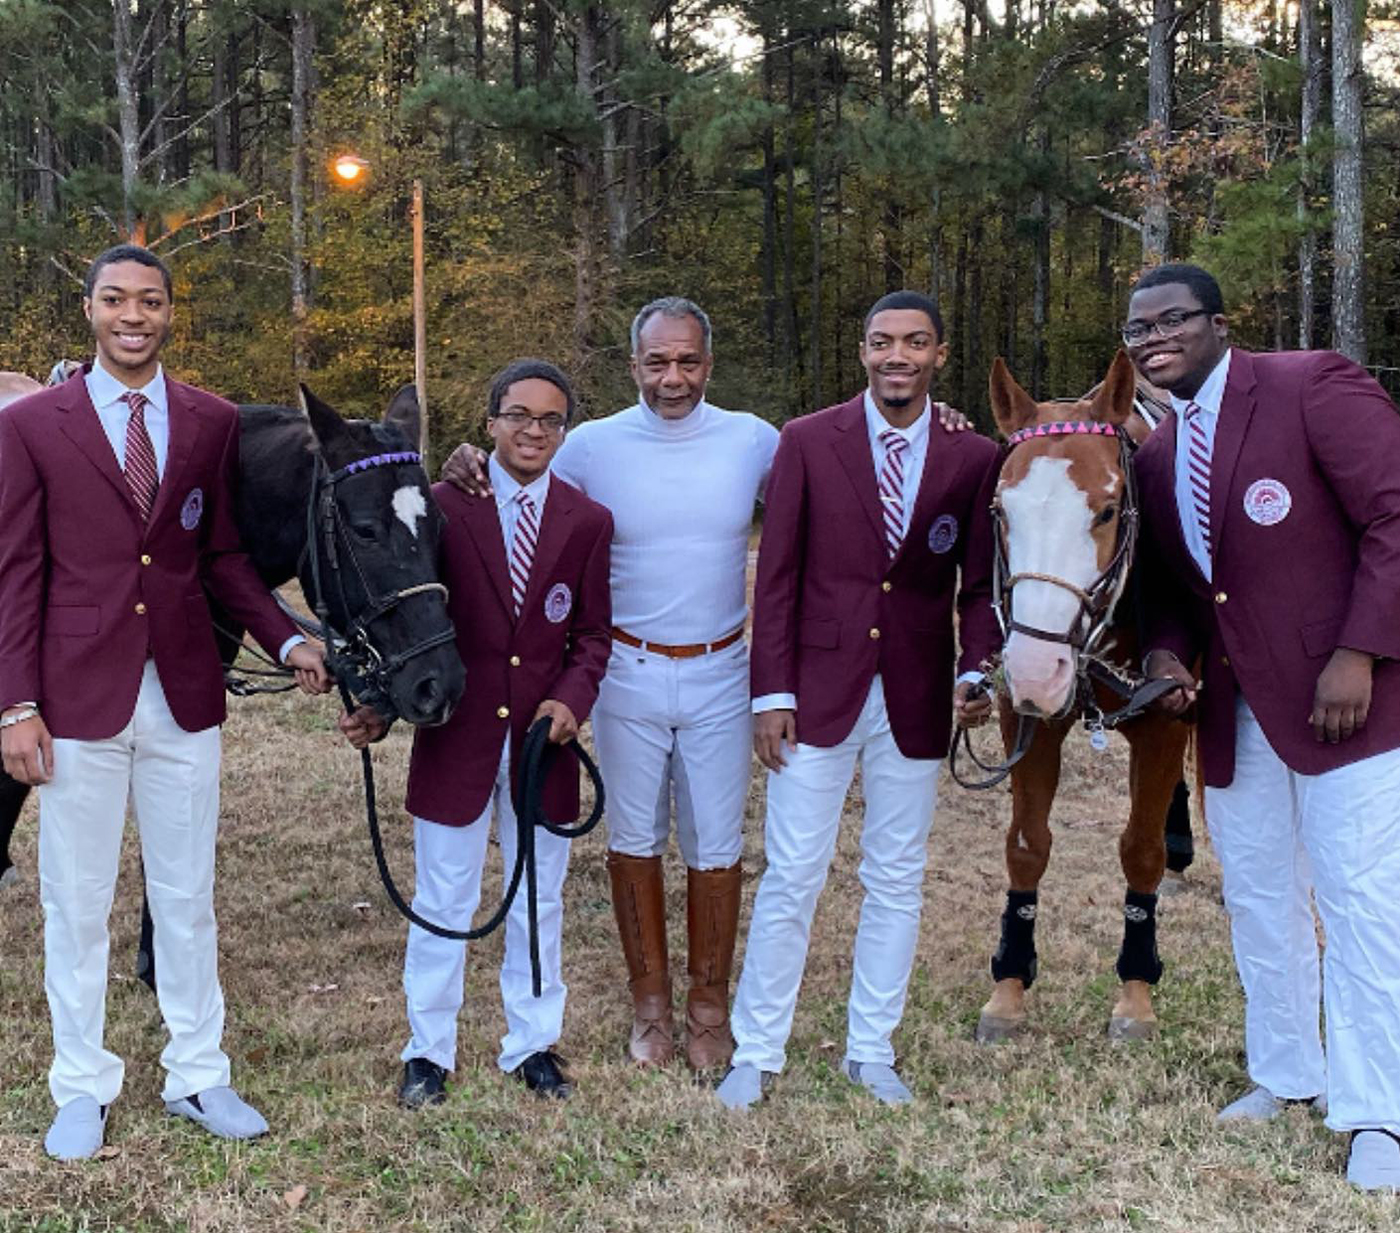 HBCU Polo Club Initiative